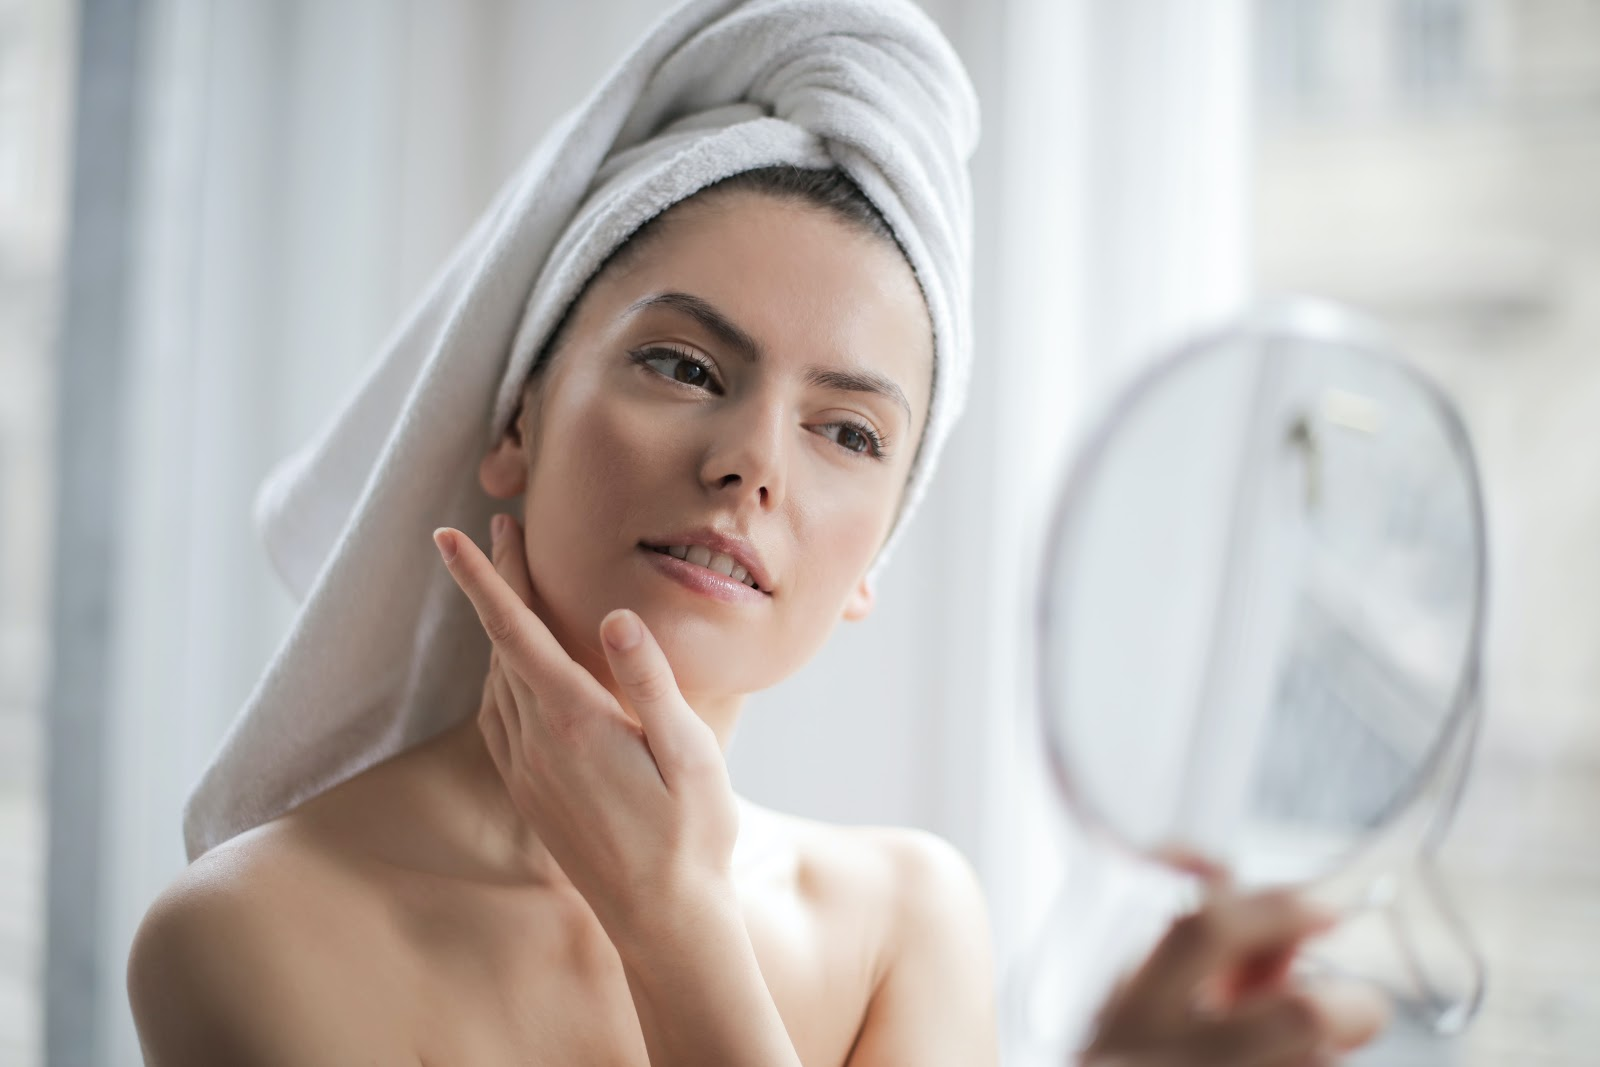 makeup removing mistakes